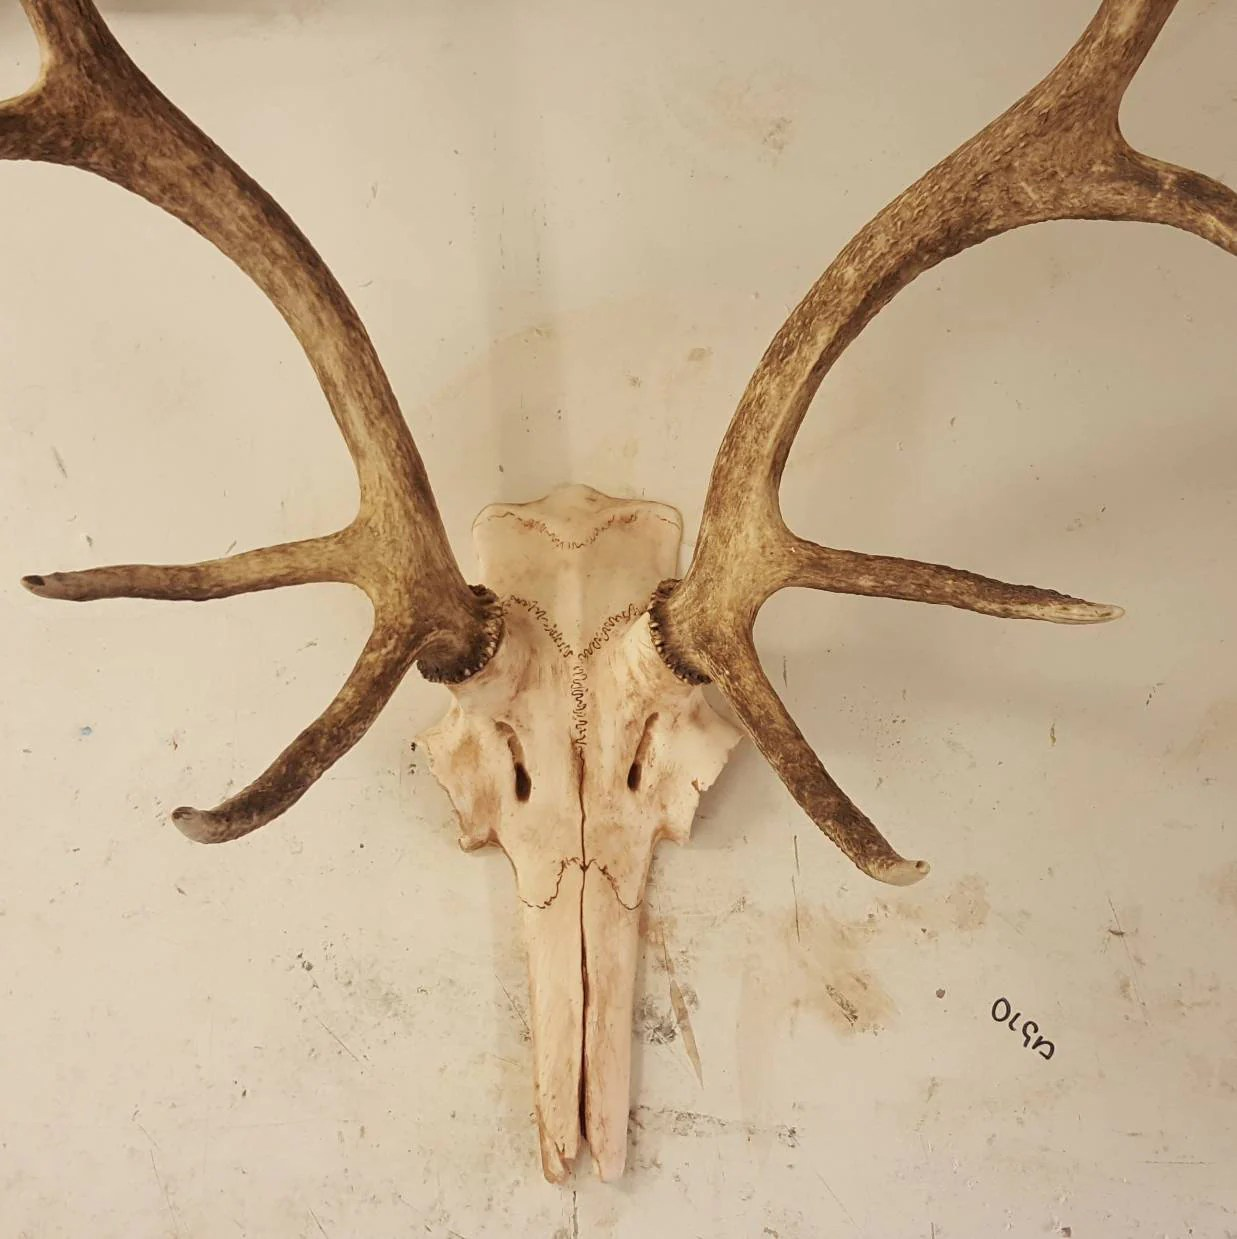 Fake Deer Skull And Antlers Stag Deer Replica Partial Skull Cap To Mount Antlers On Faux